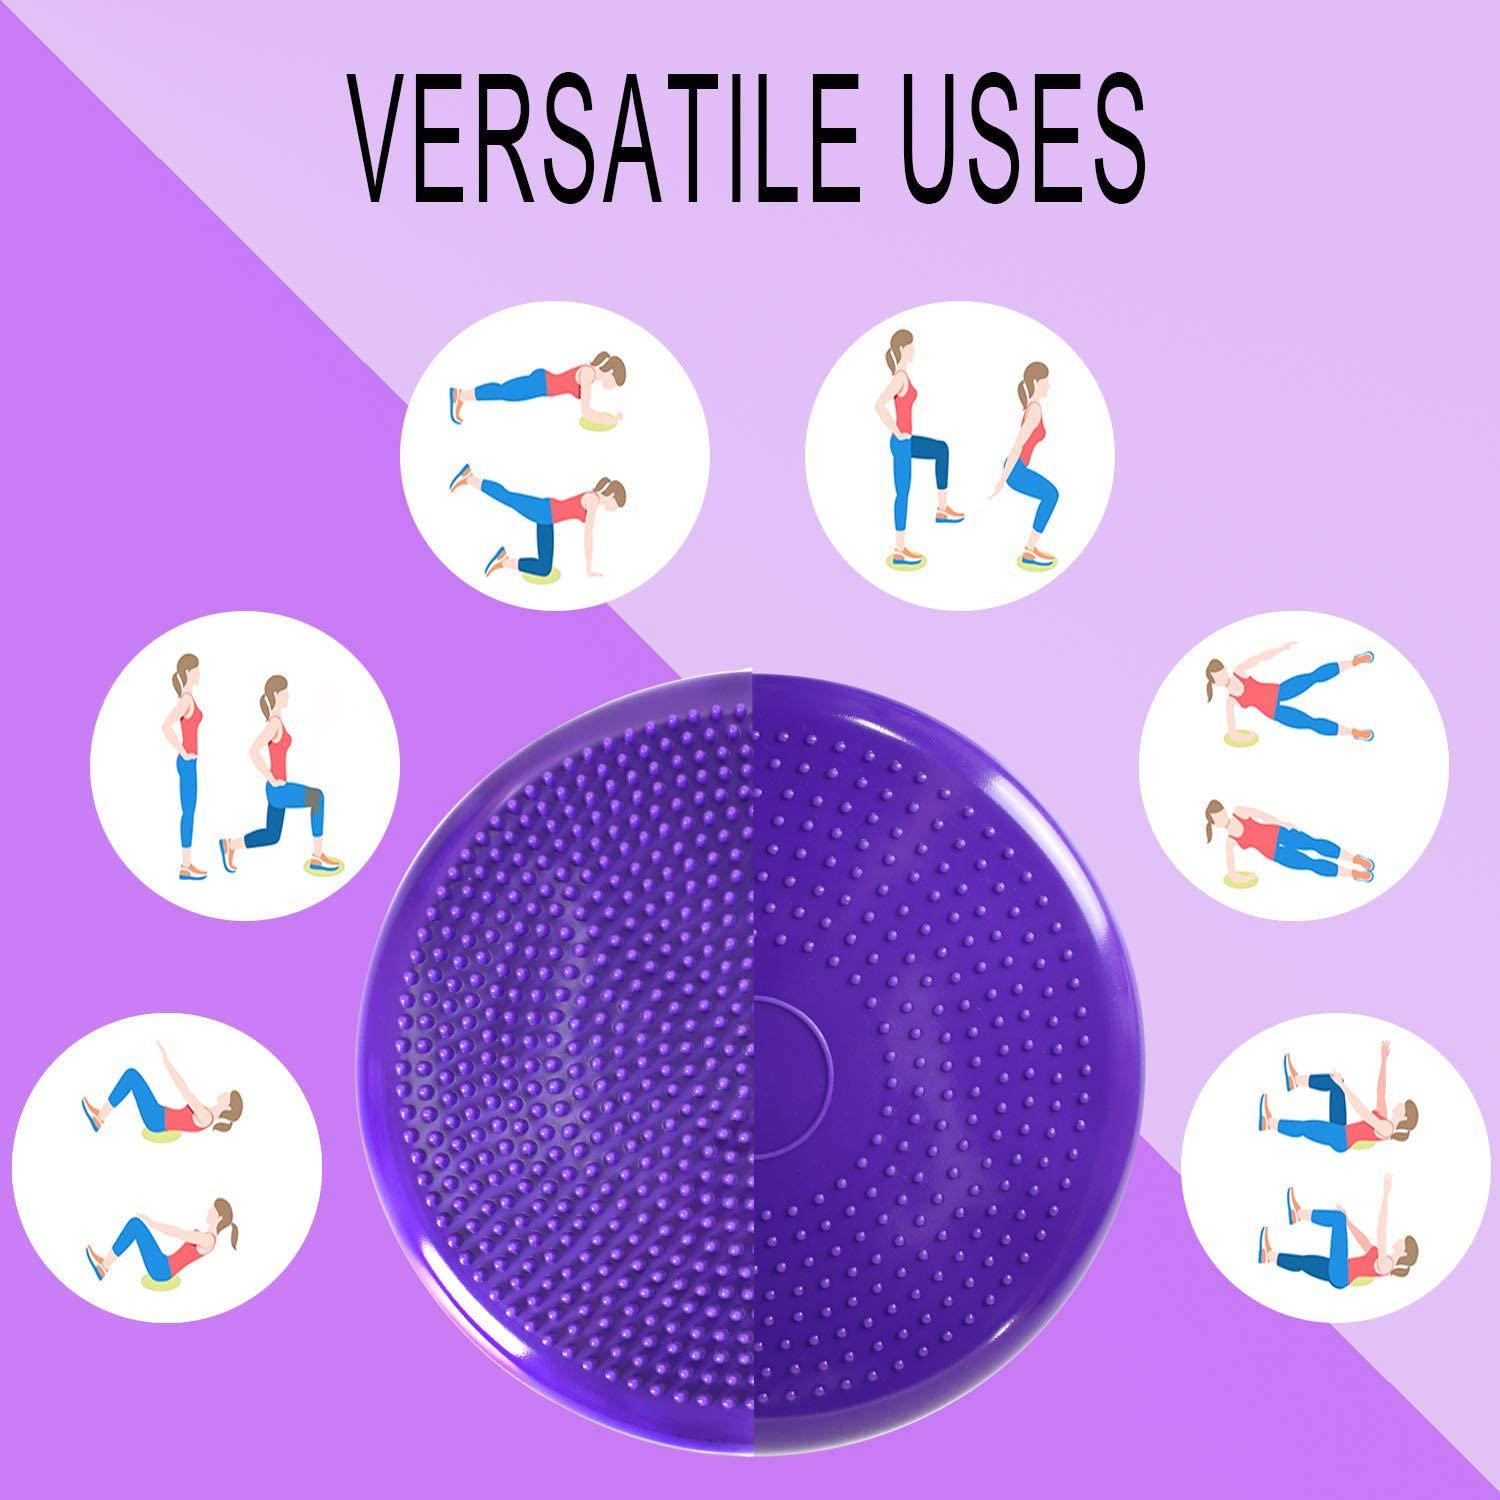 Wiggle Seat for Sensory Kids Purple Nvzi Wobble Cushion with Spiky Massage Ball Classroom Furniture Balance Disc for Strengthen Core Stability Office Flexible Alternative Seating for School